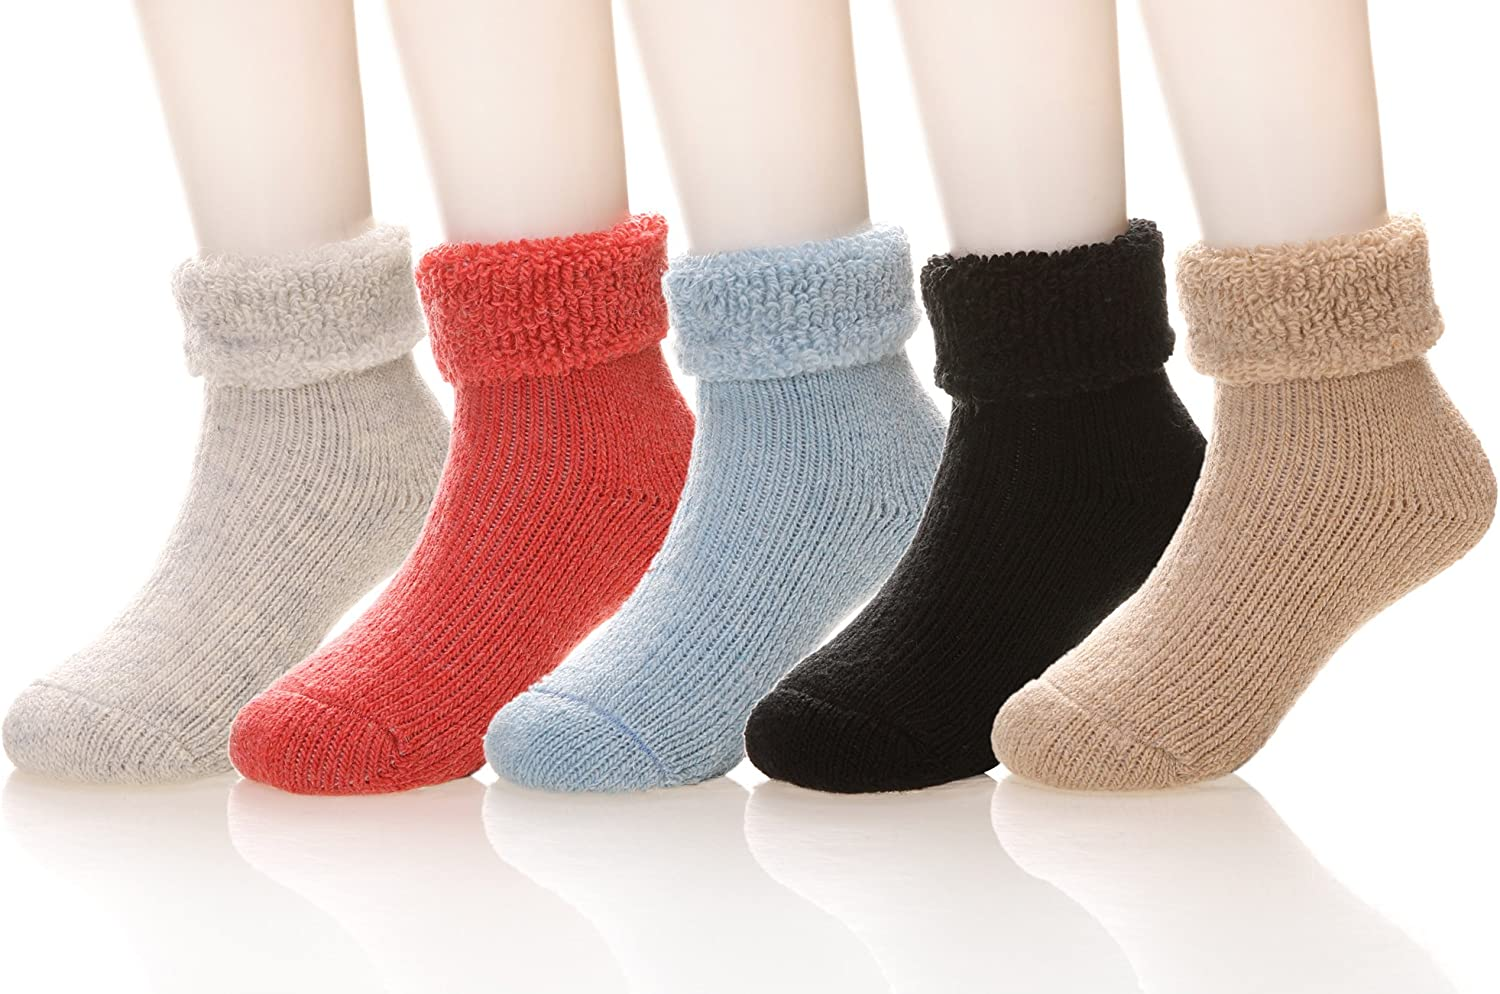 Eocom Childrens Winter Warm Wool Socks Colorful Kids Boy Girls Crew Socks 6 Pairs Random Color